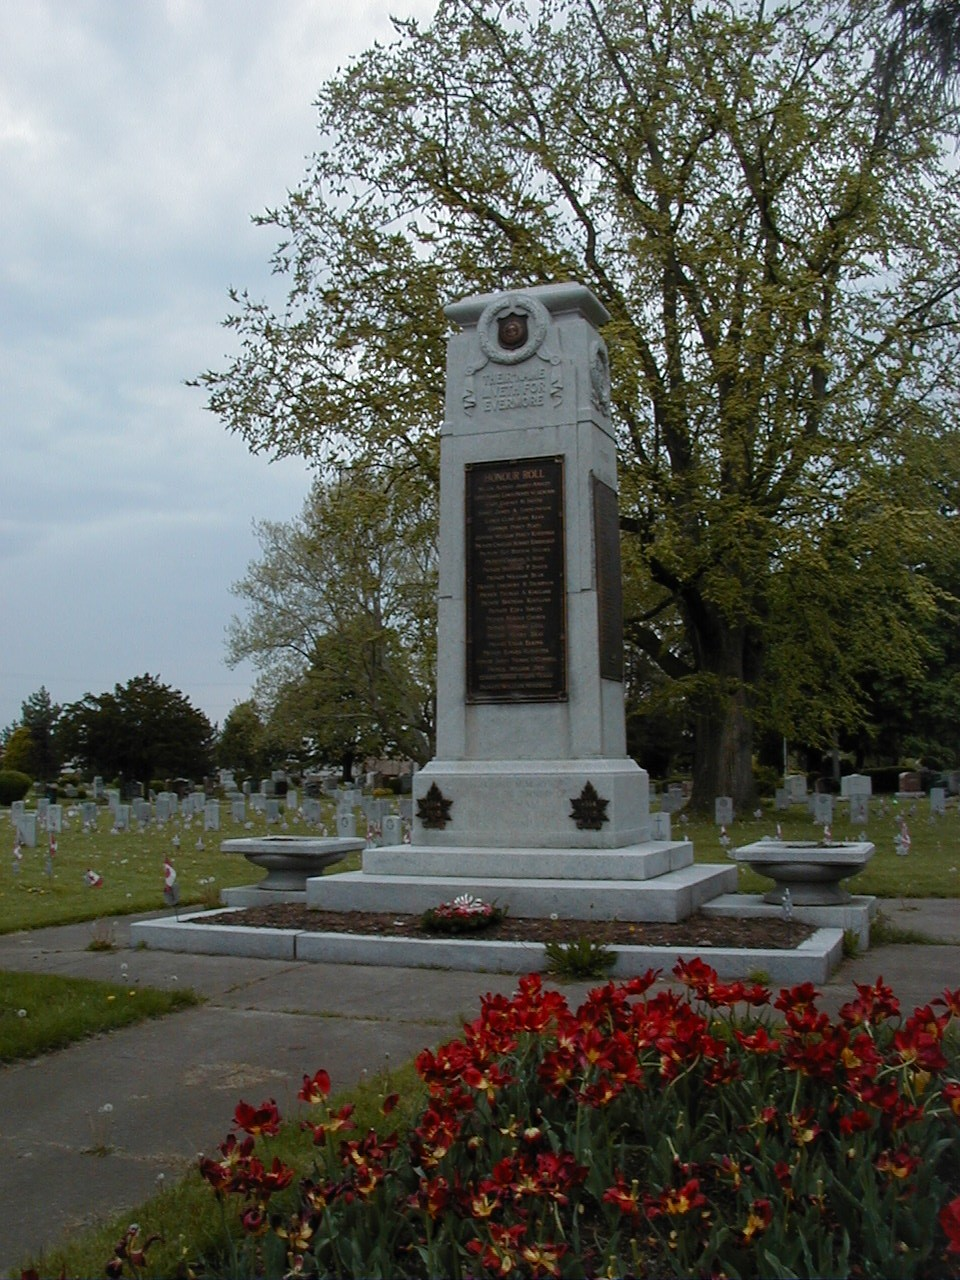 """Memorial– Pte Herbert Hipwell is commemorated on the Veterans Memorial at Victoria Lawn Cemetery, St. Catharines, ON.  Copyright © 2017 by T.L. Skelding. All rights reserved. The photograph(s) may be used solely for personal, informational, and internal purposes. The photograph(s) may not be modified or altered in any way OR posted on any other web-site for any purpose whatsoever. I request to be notified where the image is being used and that the tag """"Courtesy The Mounted Dragoon. Copyrighted Image. Used with Permission."""" is added to every image."""